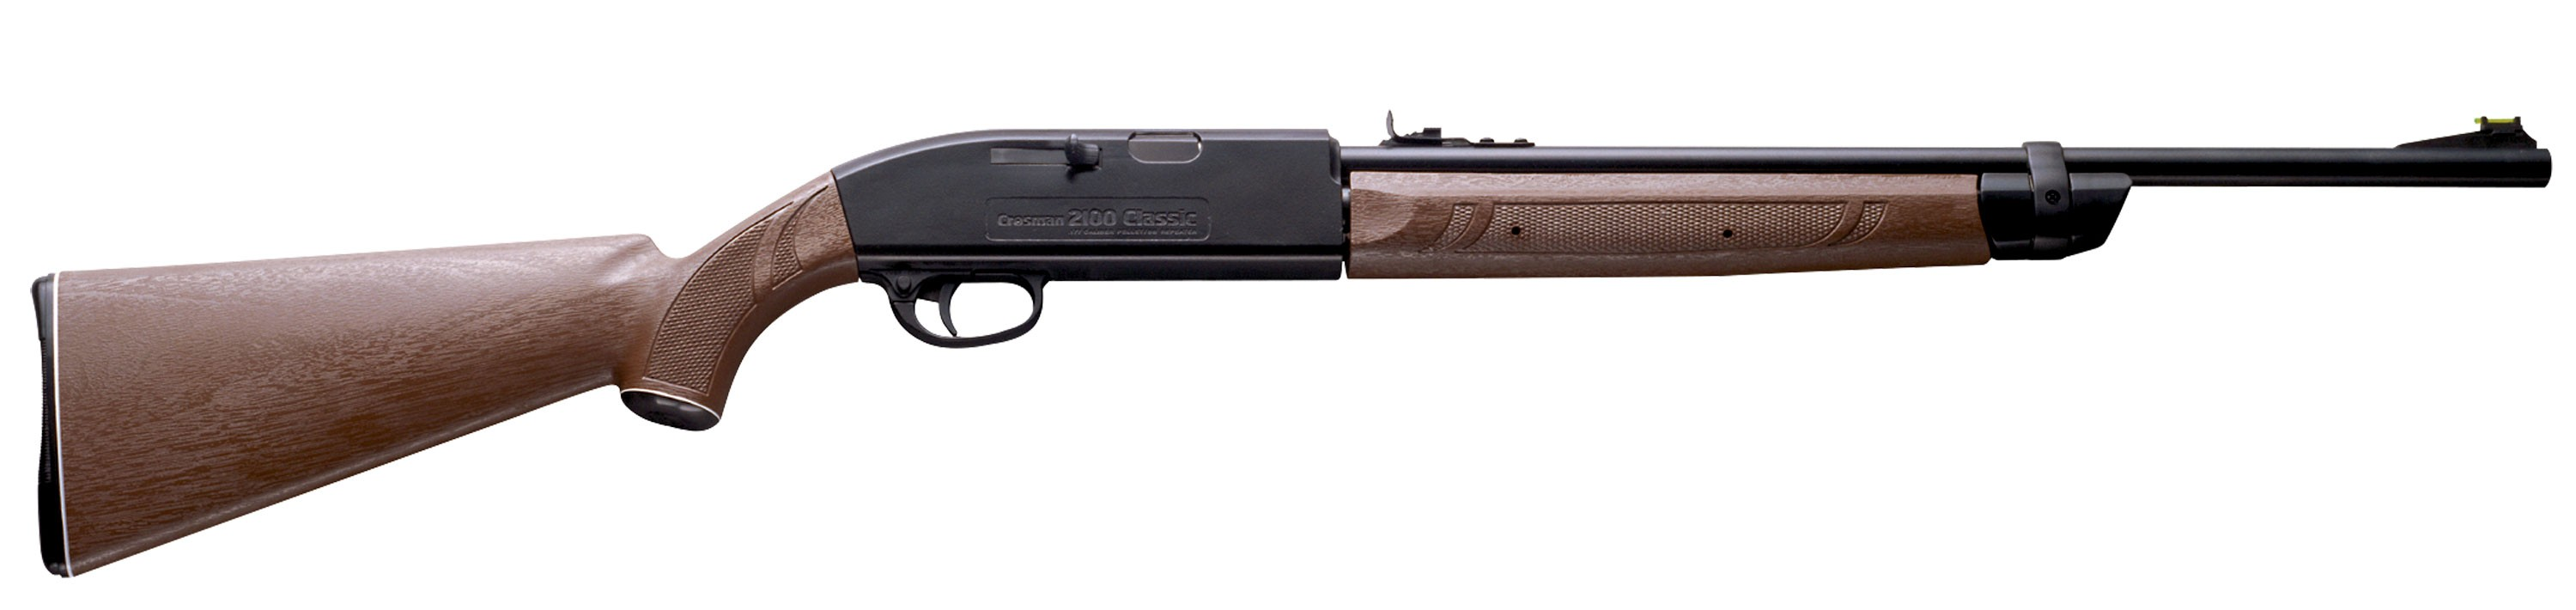 Crosman 2100B available from P.B.Dionisio & Co.